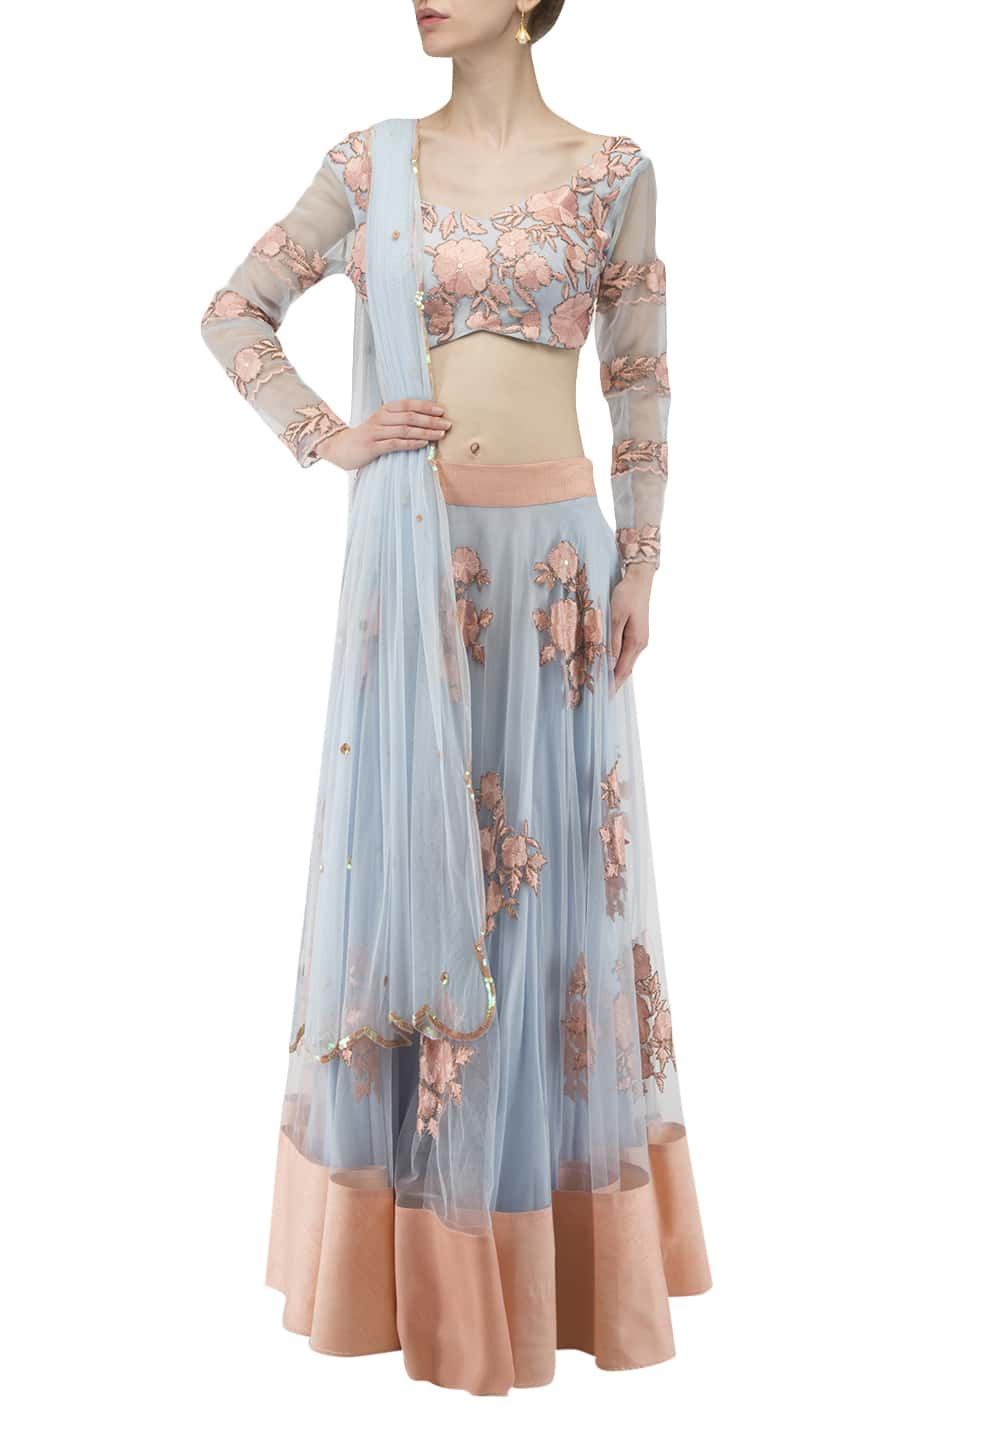 dd6ebe6235d4aa Ank by Amrit Kaur · Pastel Blue and Pink Thread Embroidered Blouse, Lehenga  and Dupatta